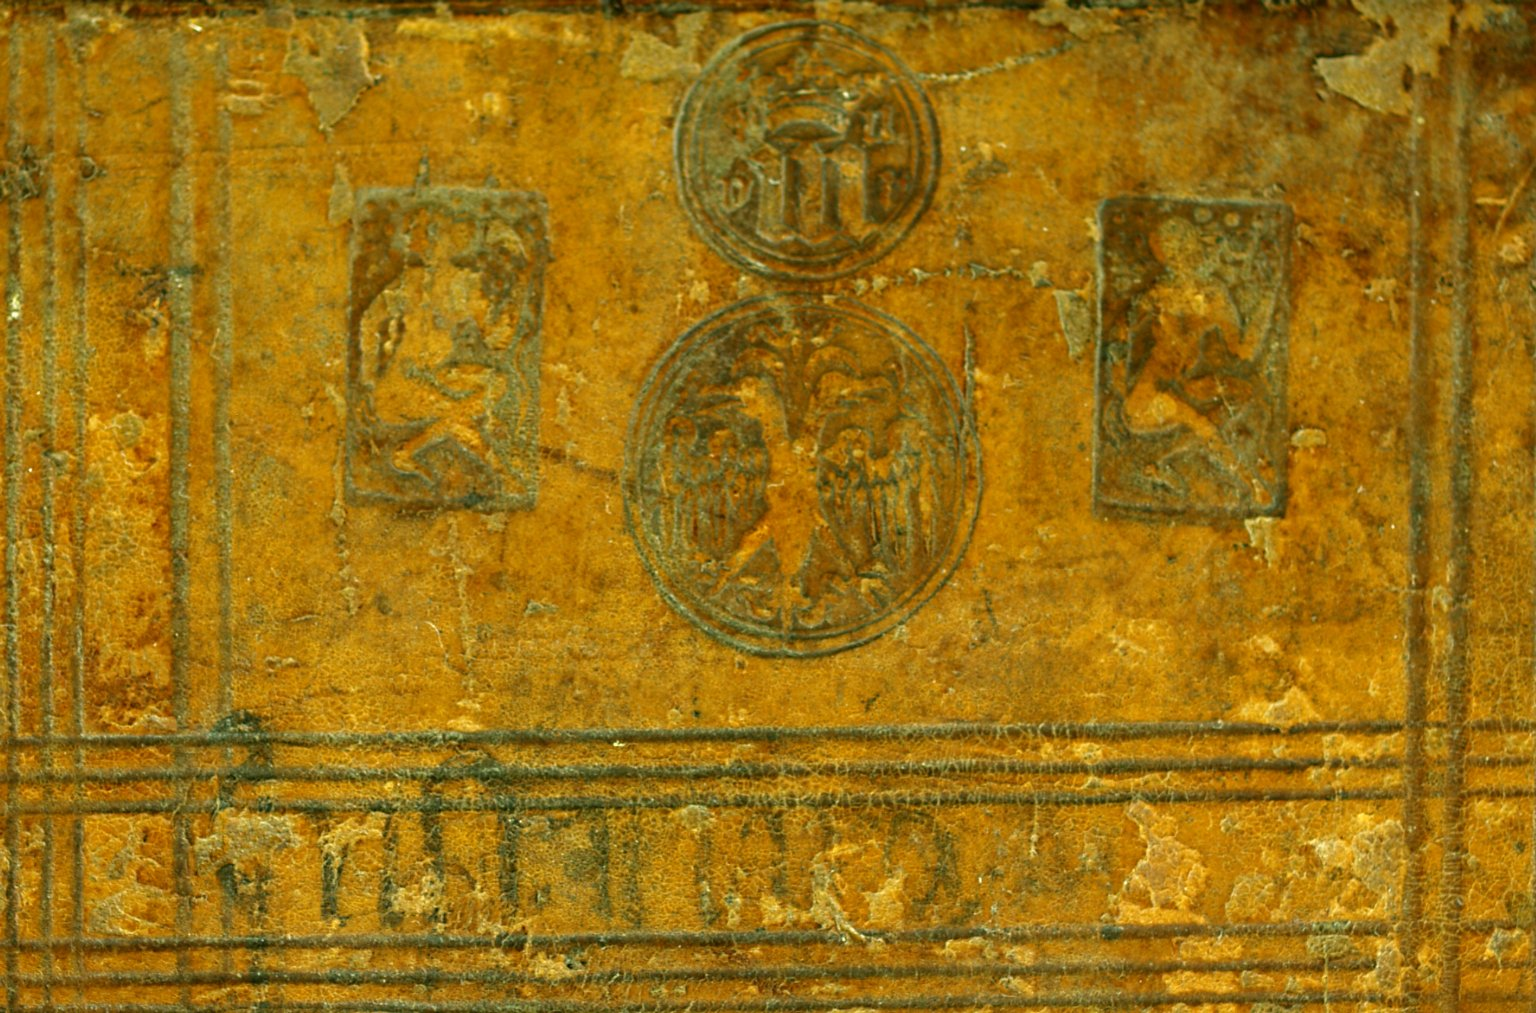 Top front cover (detail), INC J467.